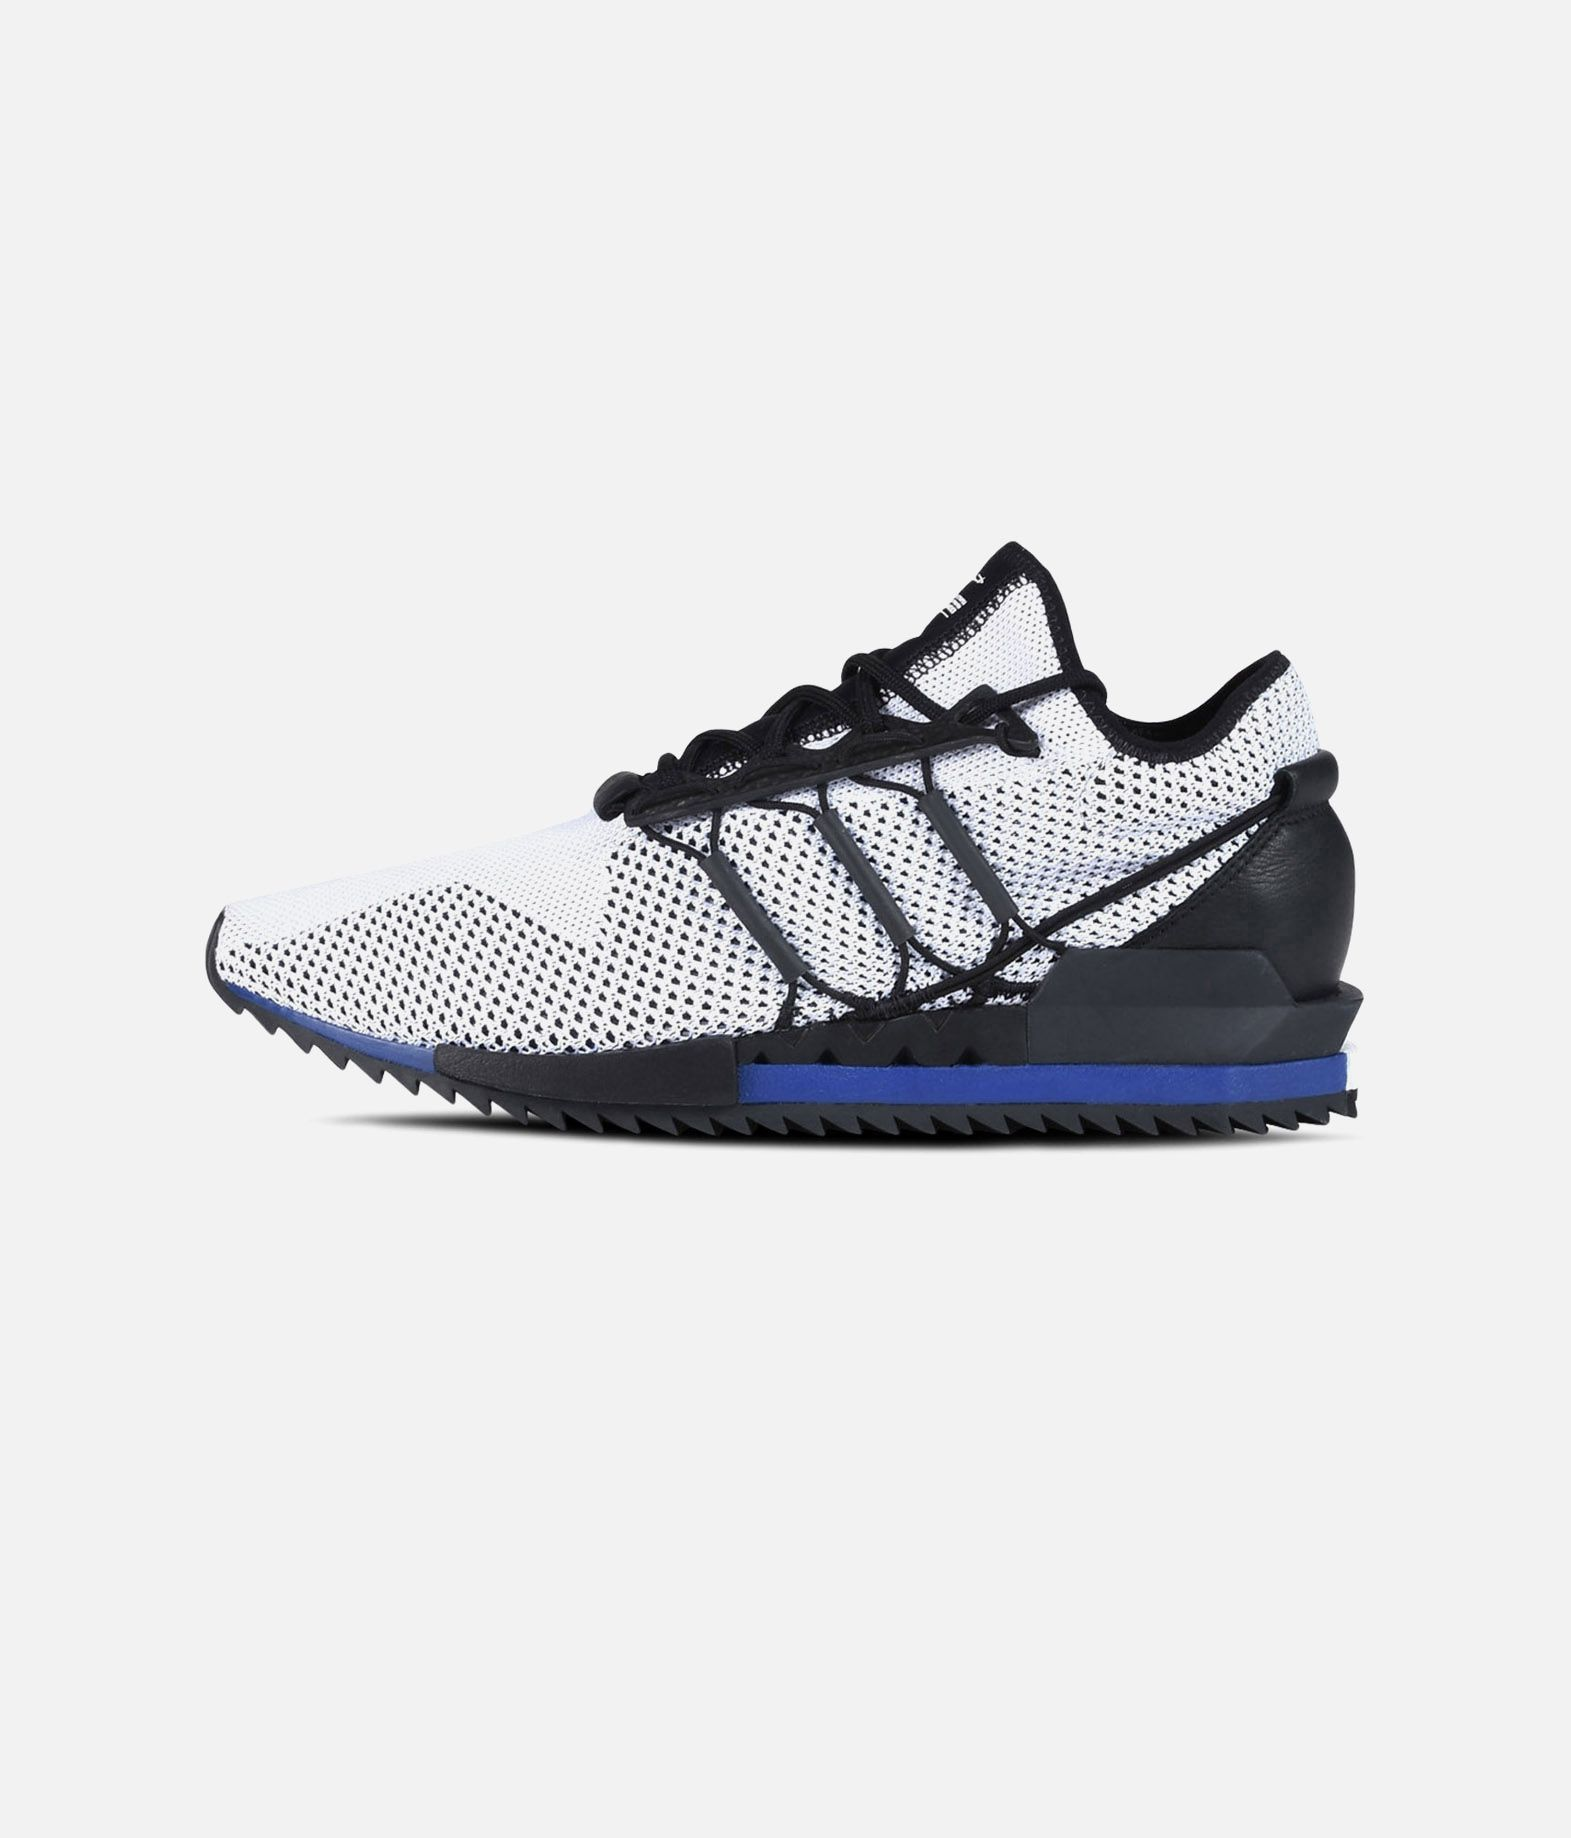 05f47d121adc1 ... Y-3 Y-3 HARIGANE Sneakers E f ...